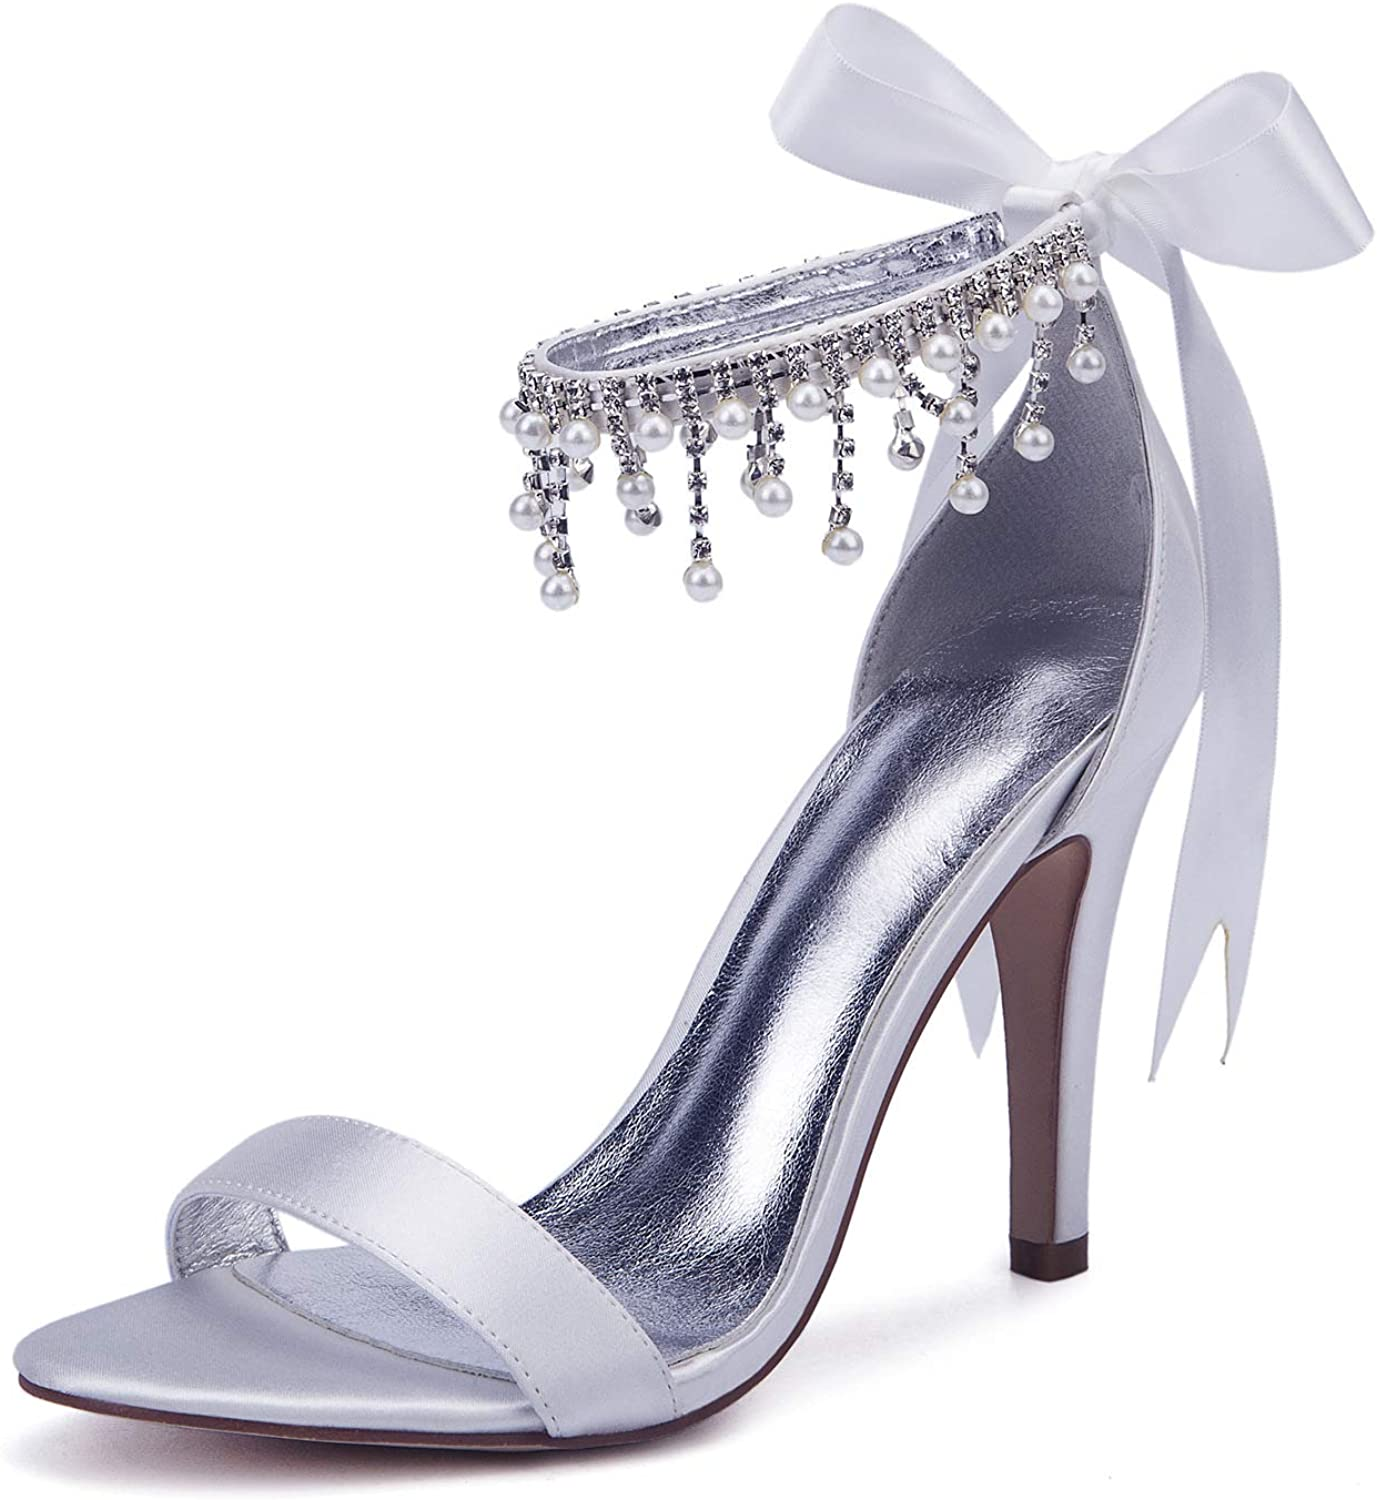 LLBubble Women High Heels Satin Crystals Wedding Bridal Sandals Open Toe Ankle Strap Prom Evening Formal Party Dress shoes 430-19